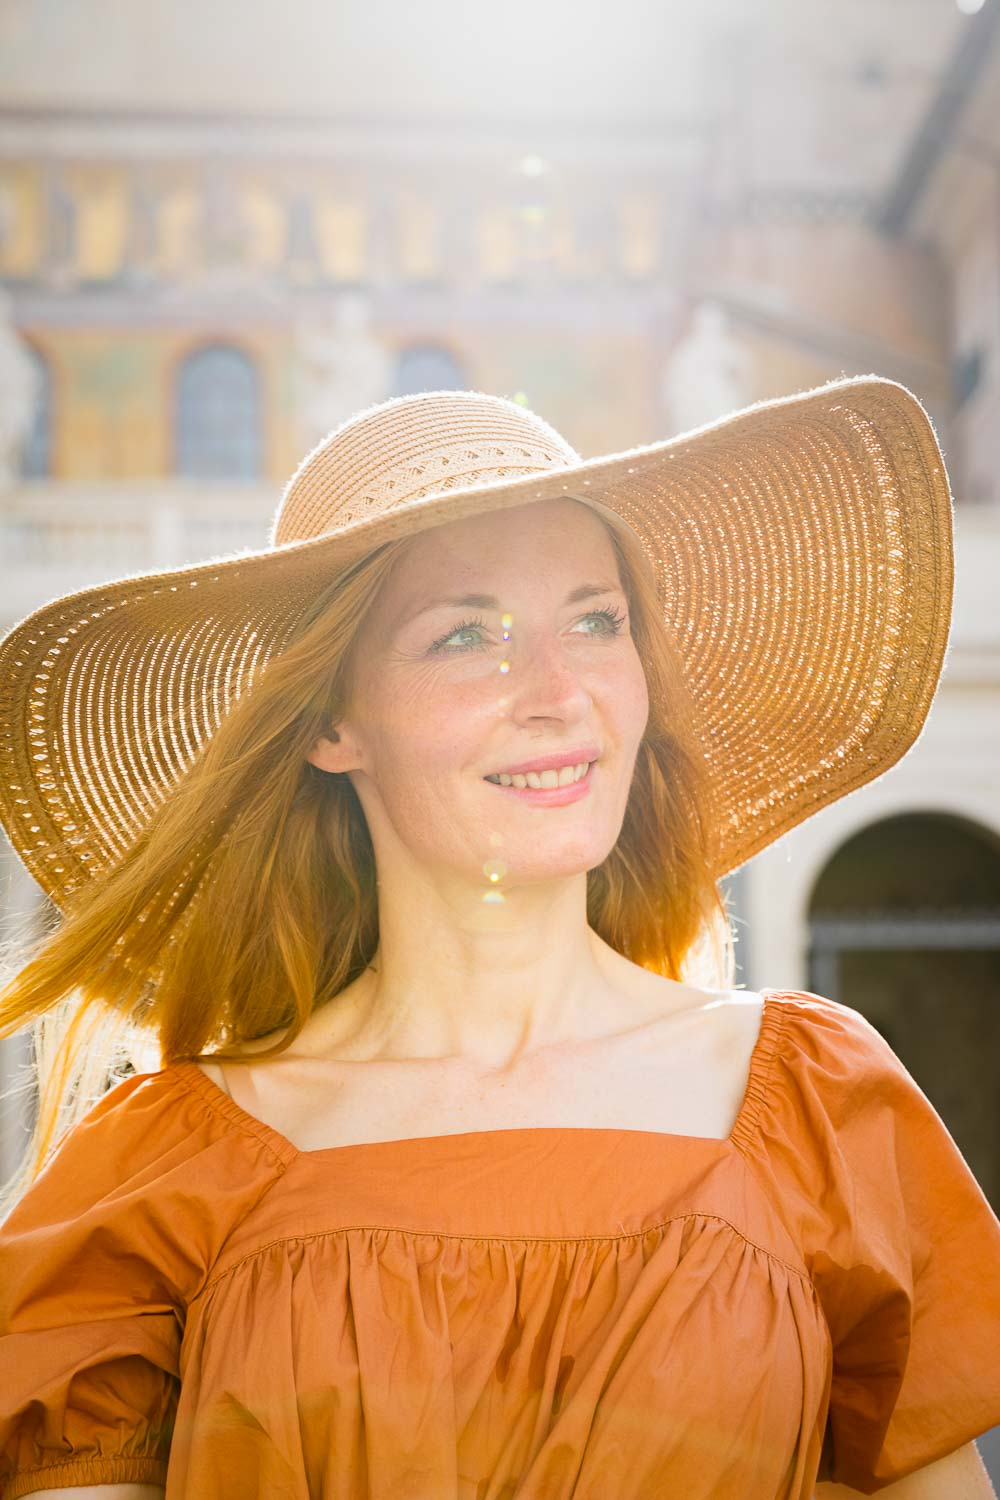 Female moedl portrait in the sun with a straw hat